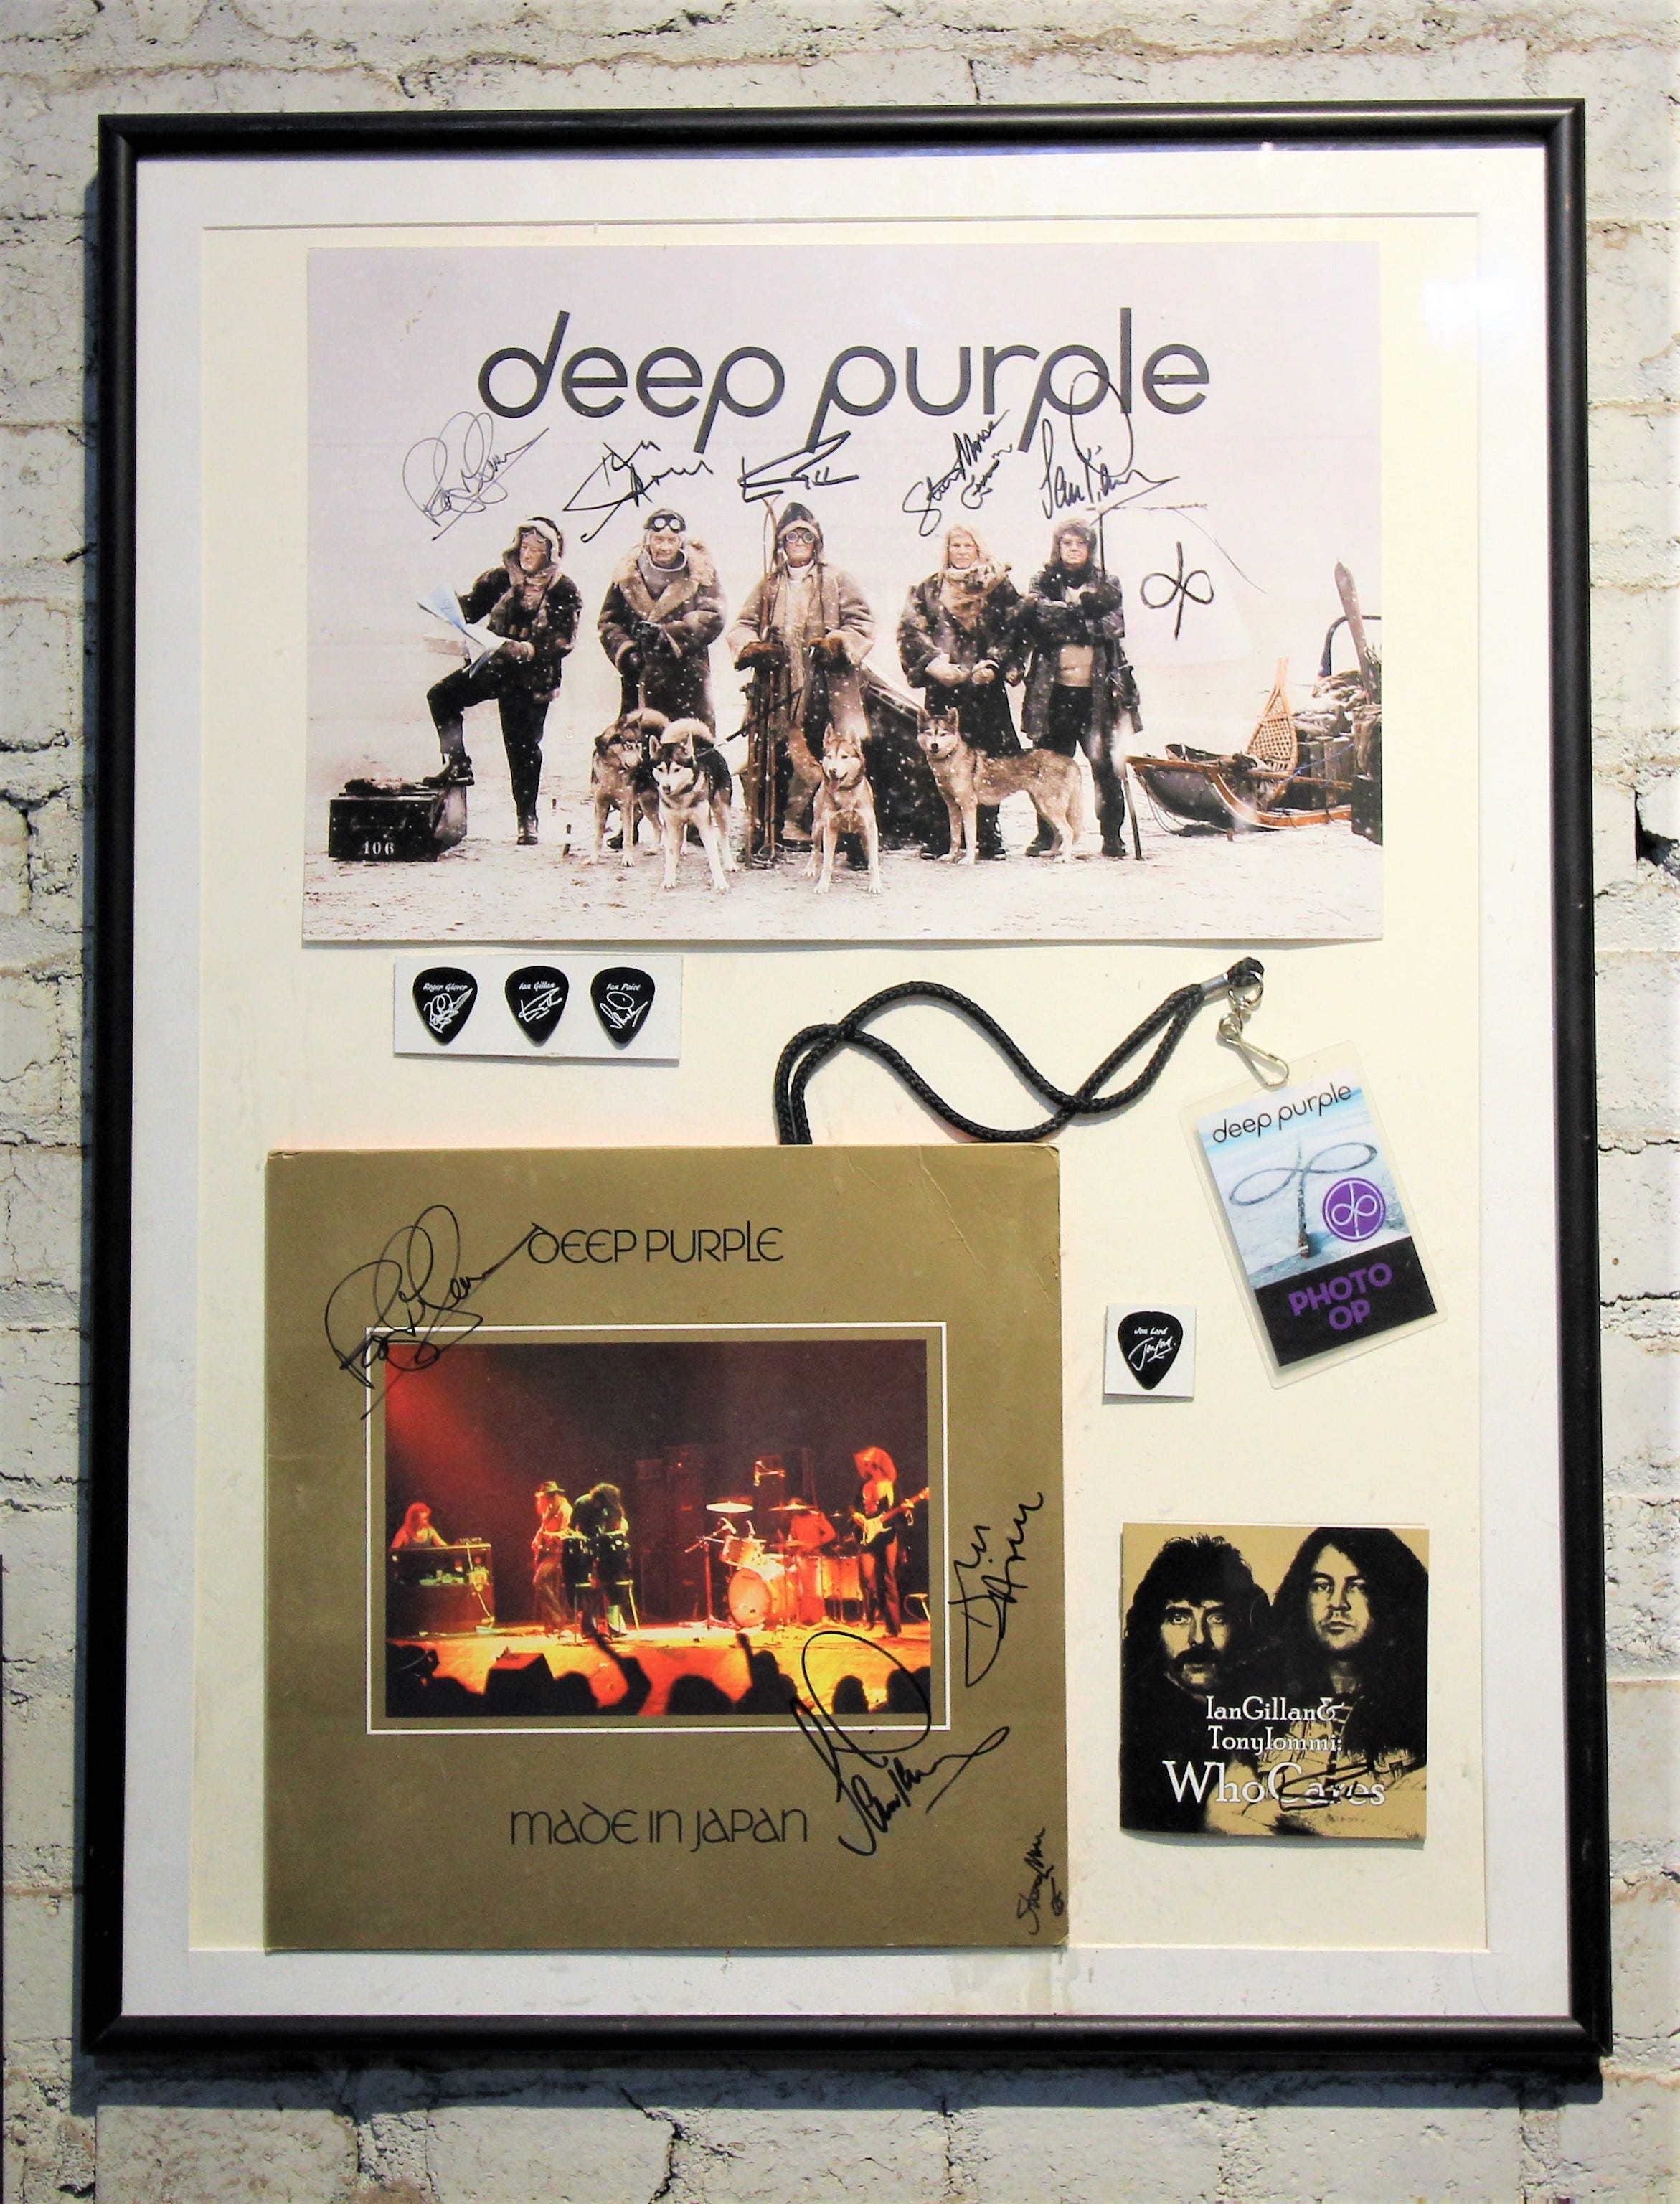 An autographed photo along with a signed album from Deep Purple is just one of the many items that can be seen on exhibit at the Carrizozo Rock and Roll Hall of Fame.